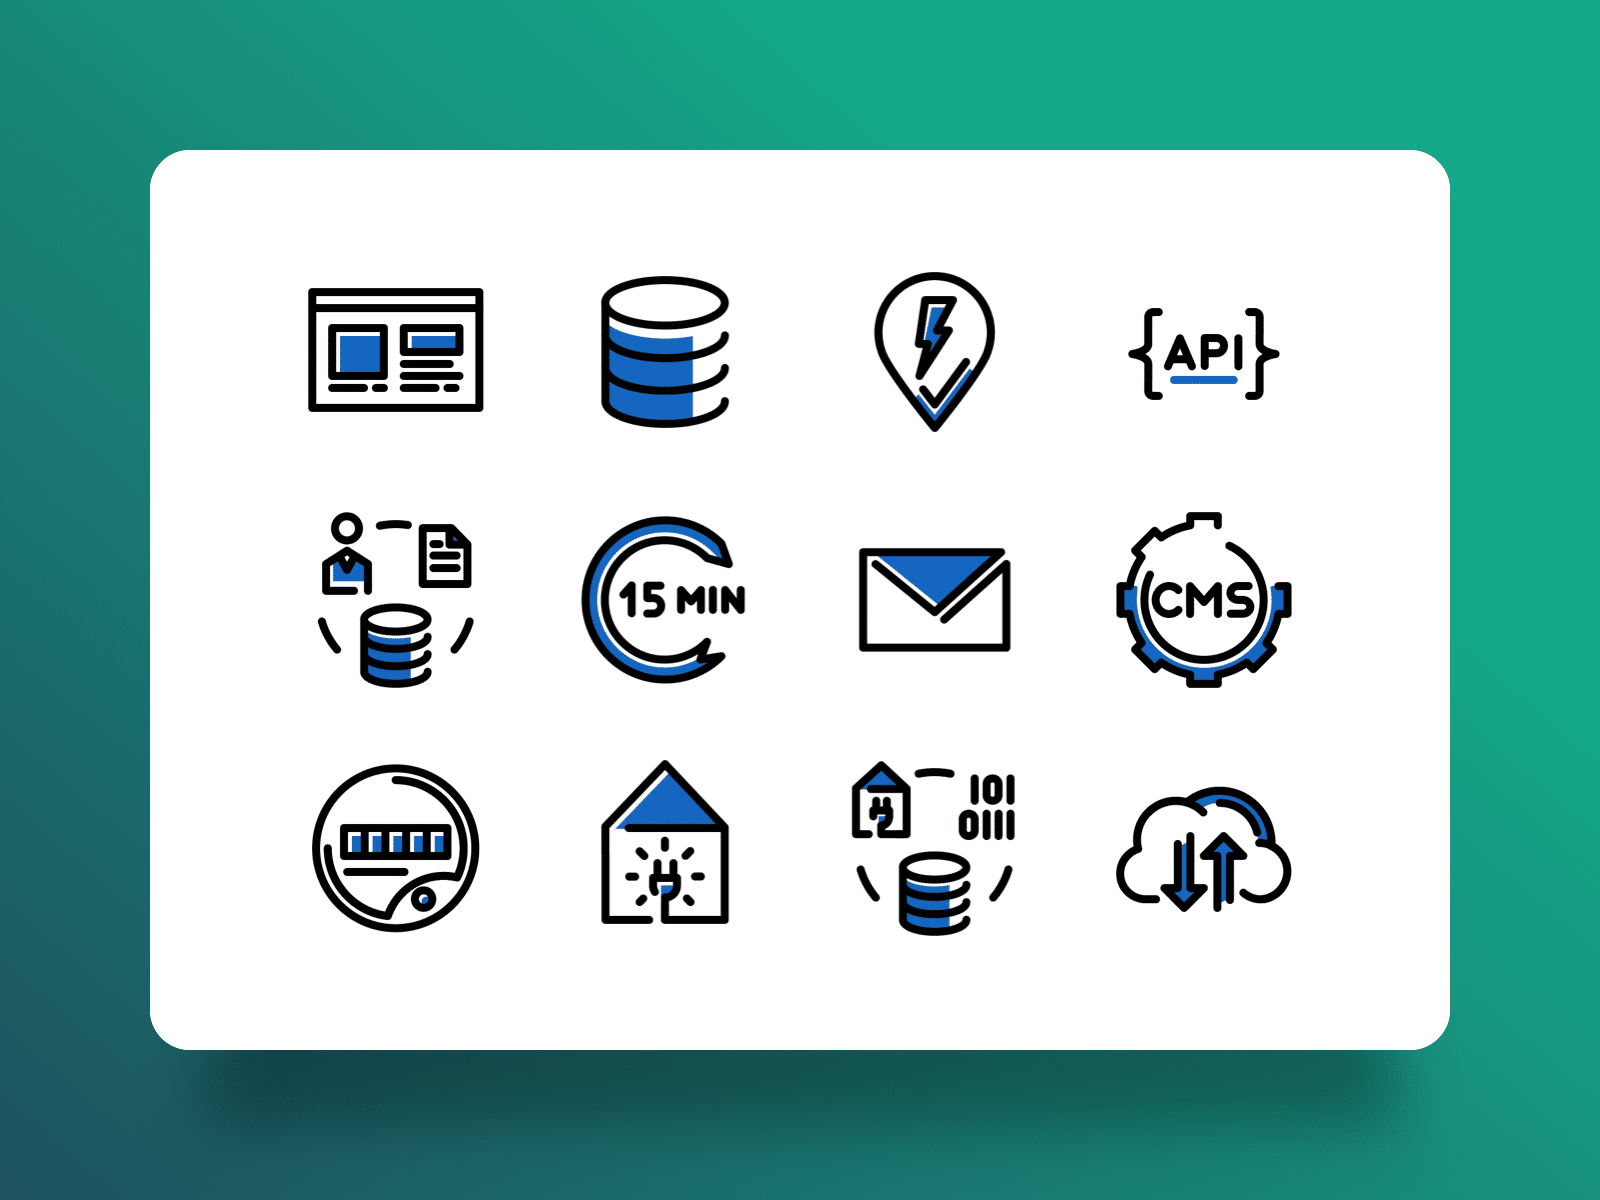 Icon designs, created for Atrias, showing different technical concepts for the energy market.